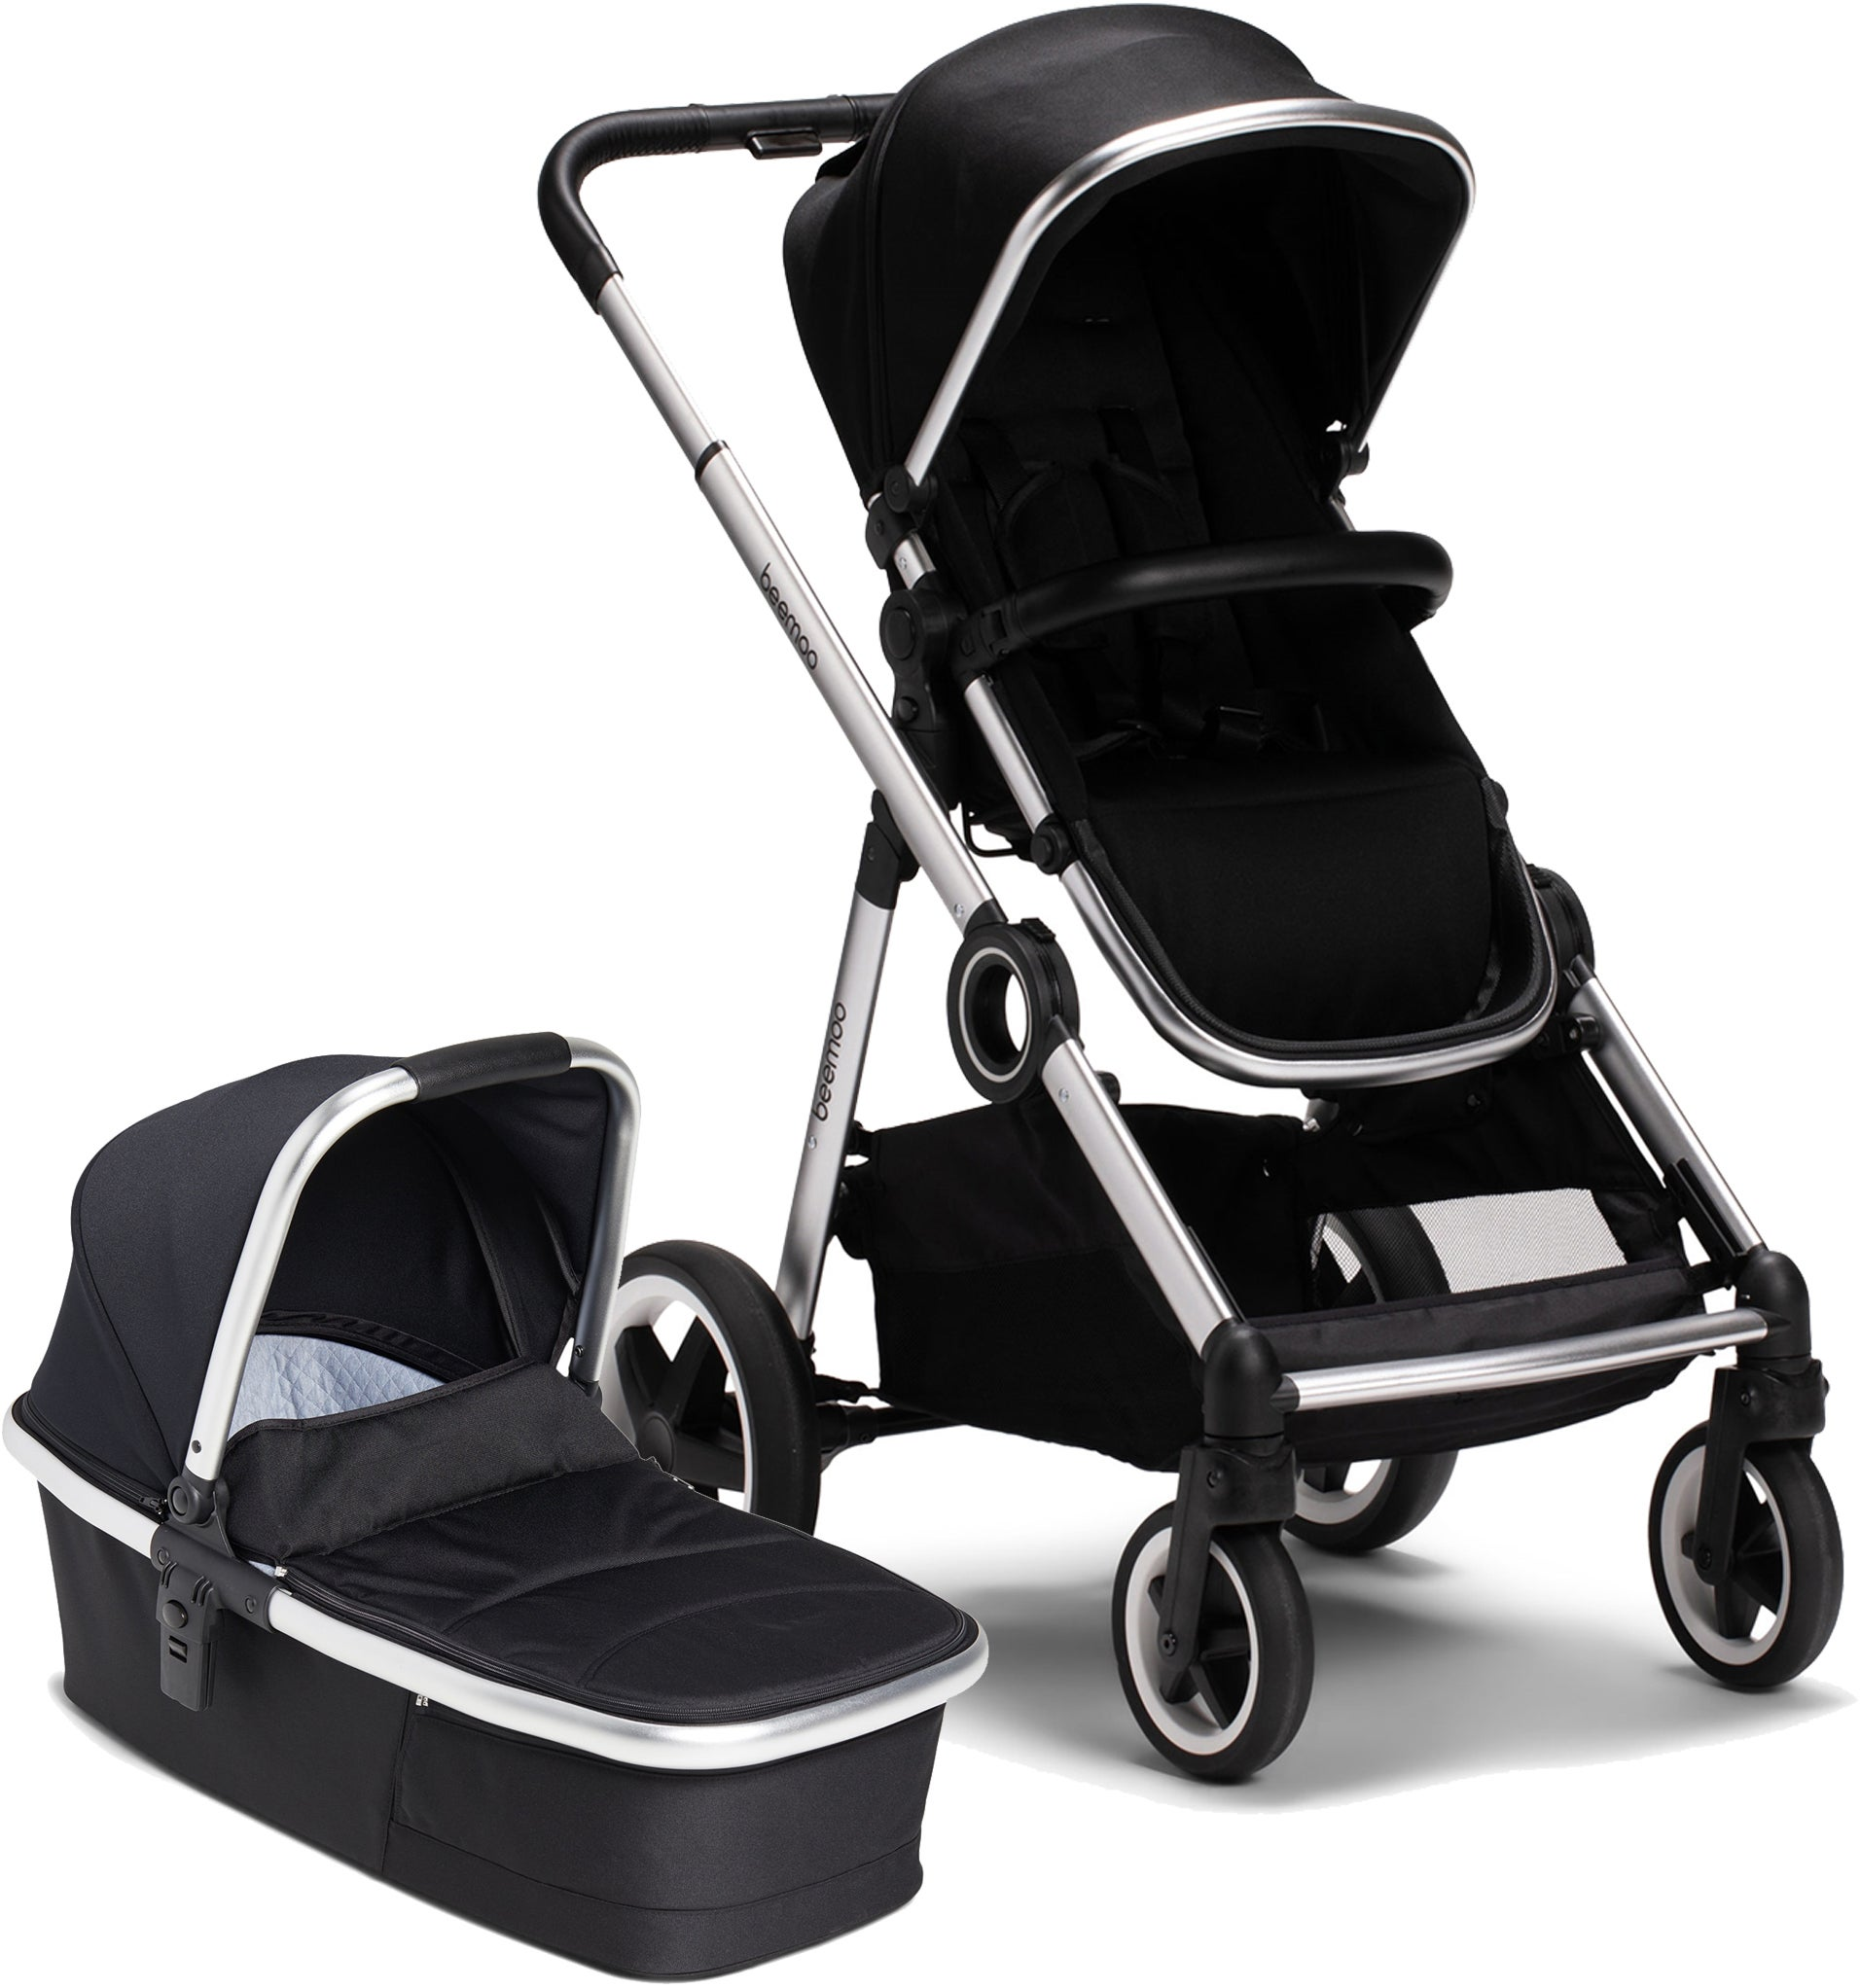 Beemoo Twin Travel+ 2020 Duovagn, Black